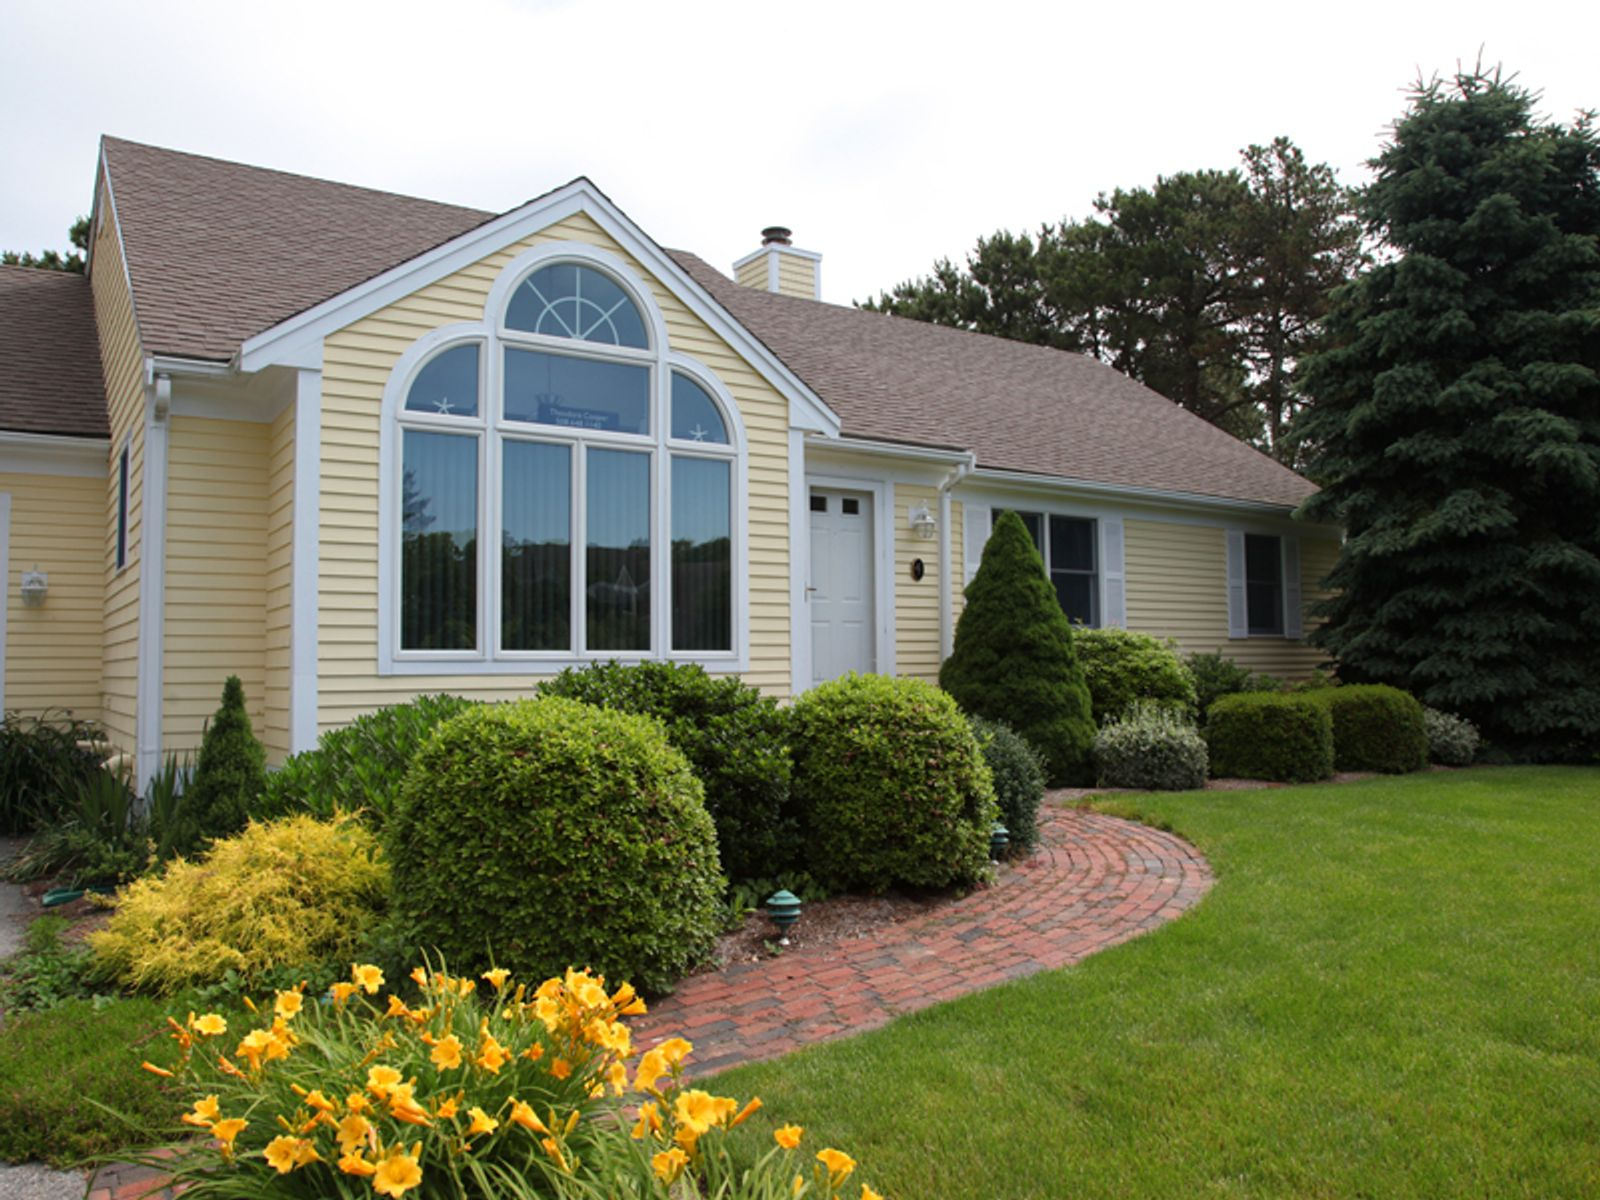 Pristine Ranch, Mashpee MA Single Family Home - Cape Cod Real Estate